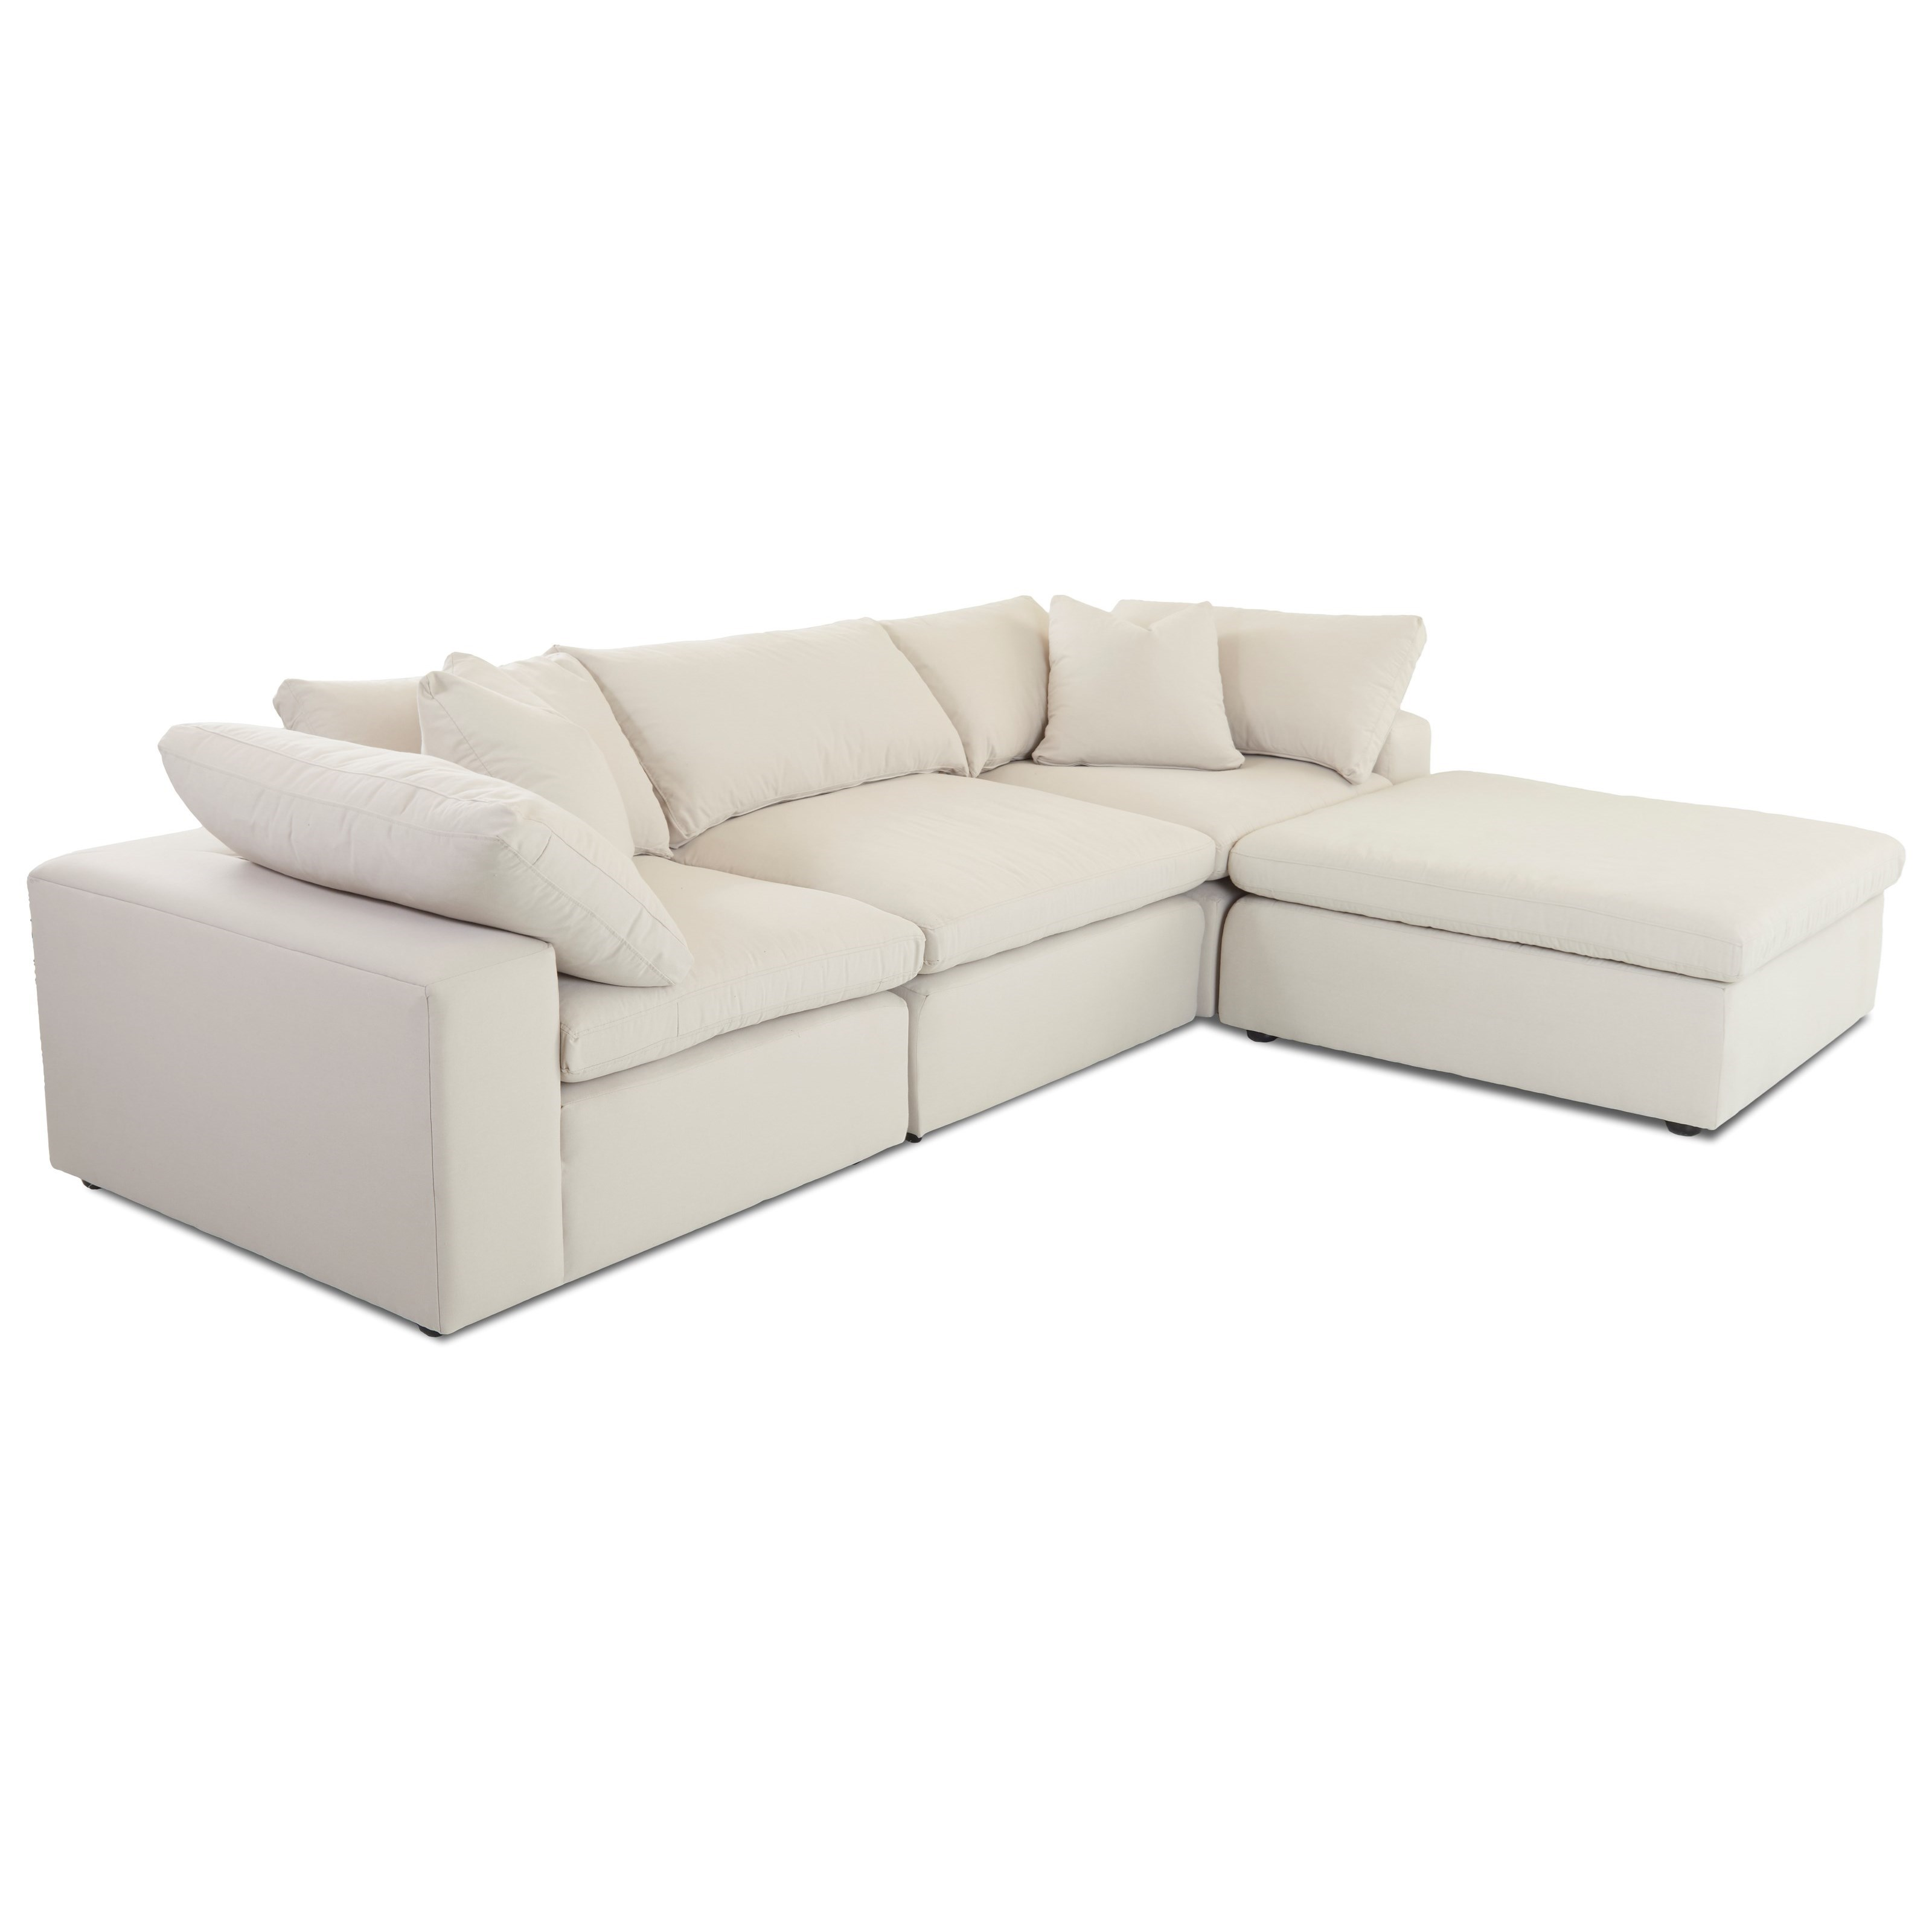 Klaussner Monterey Contemporary 4 Pc Modular Sectional